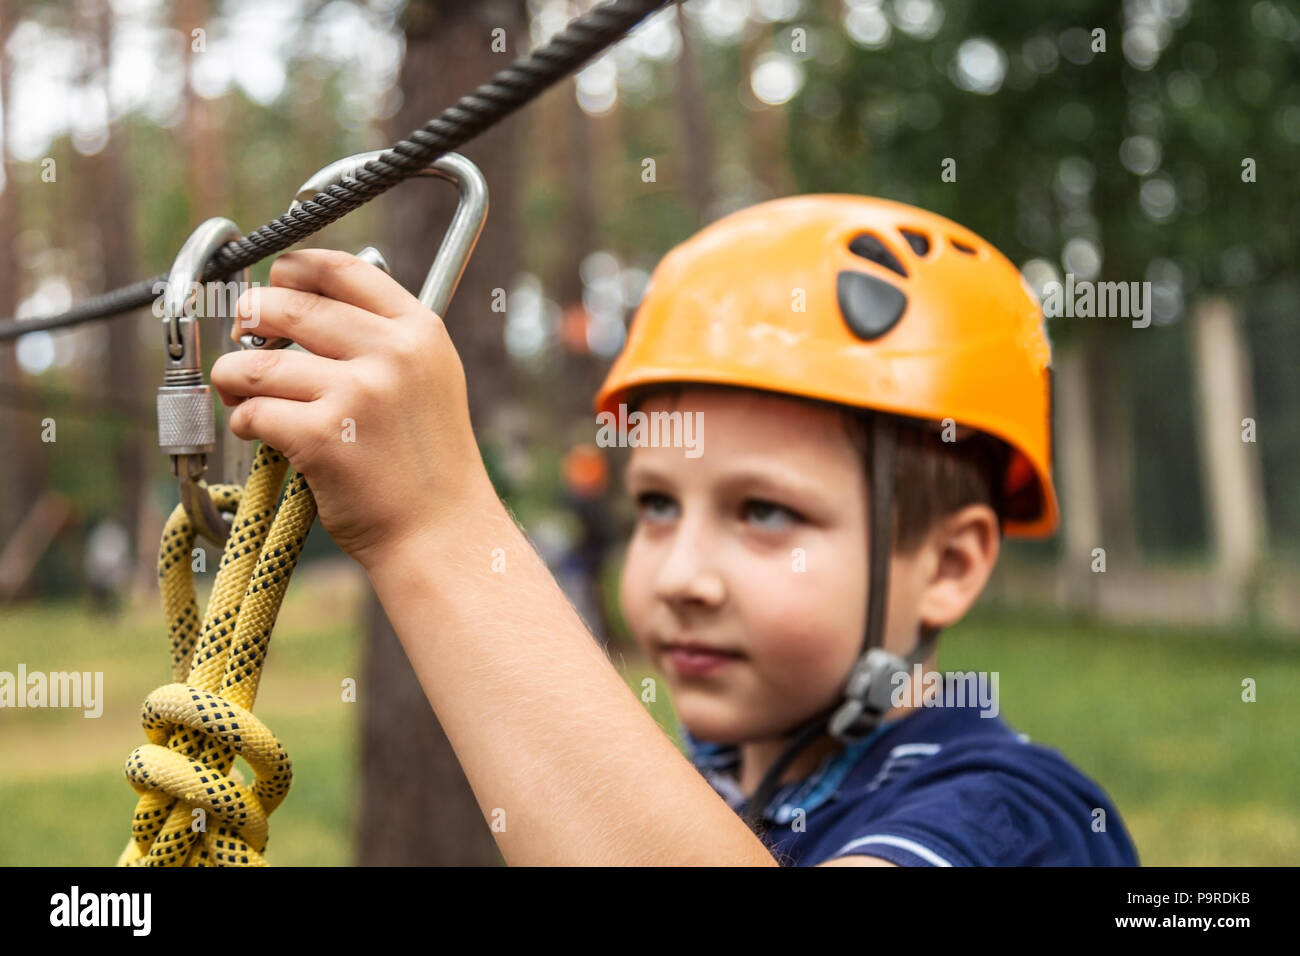 The boy insures his life - Stock Image